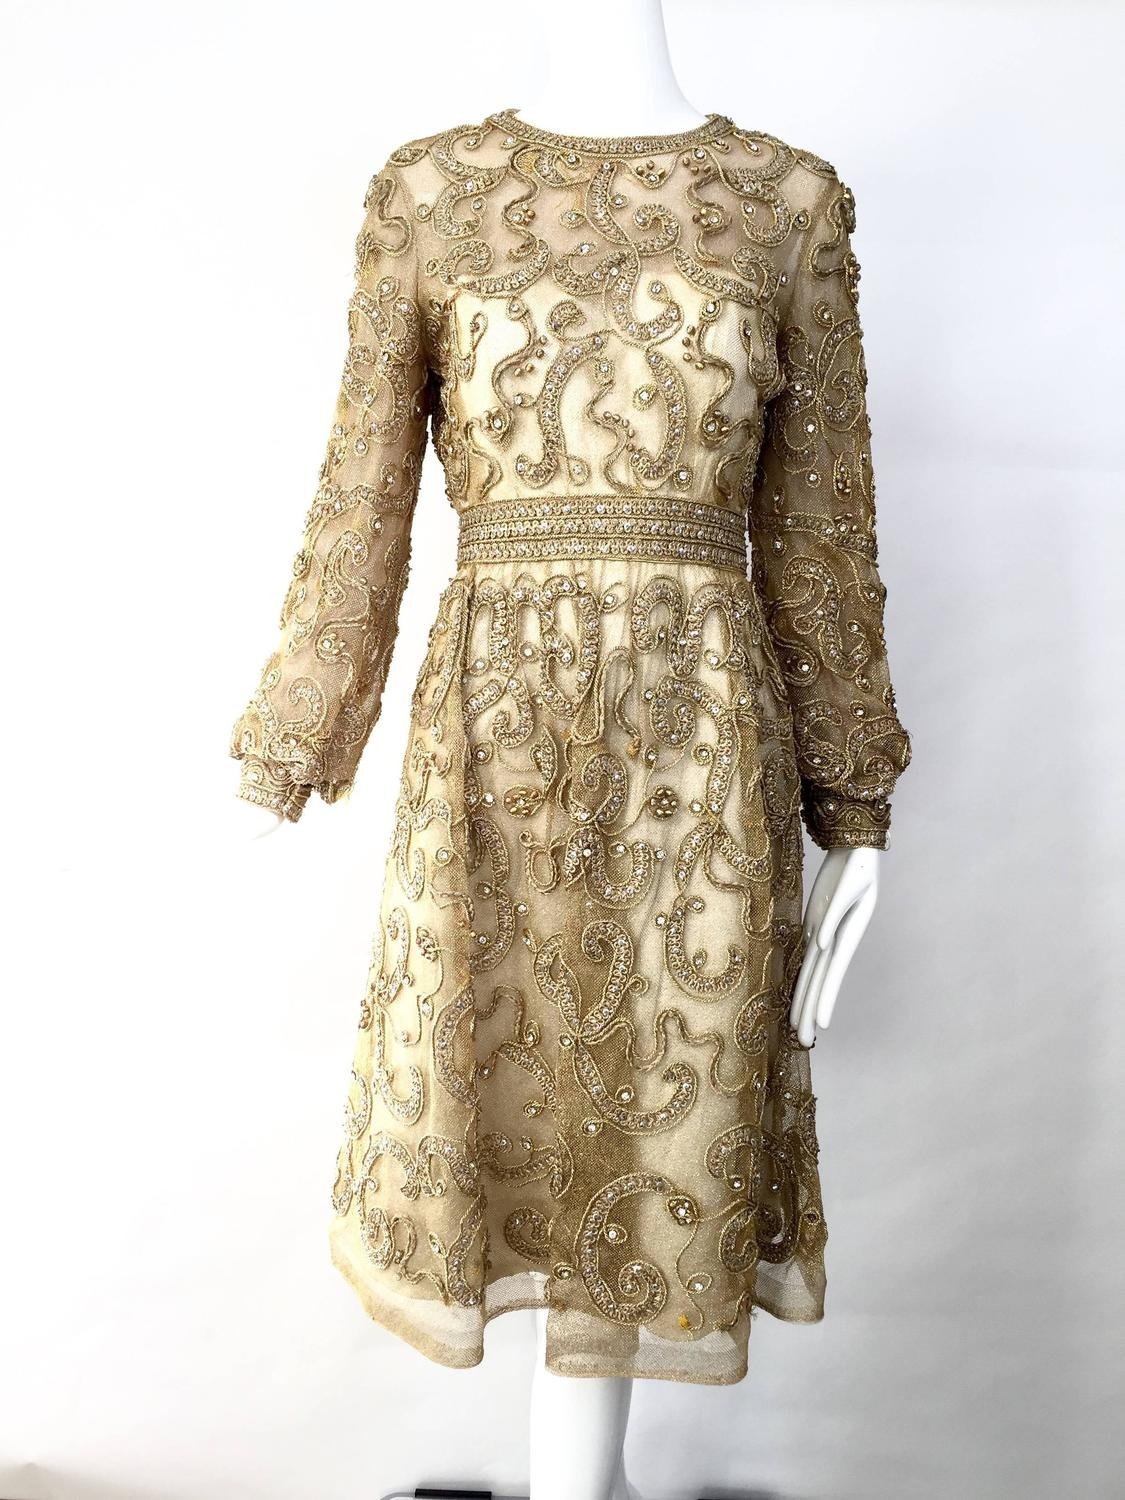 1960s Malcolm Starr gold cocktail dress at 1stdibs